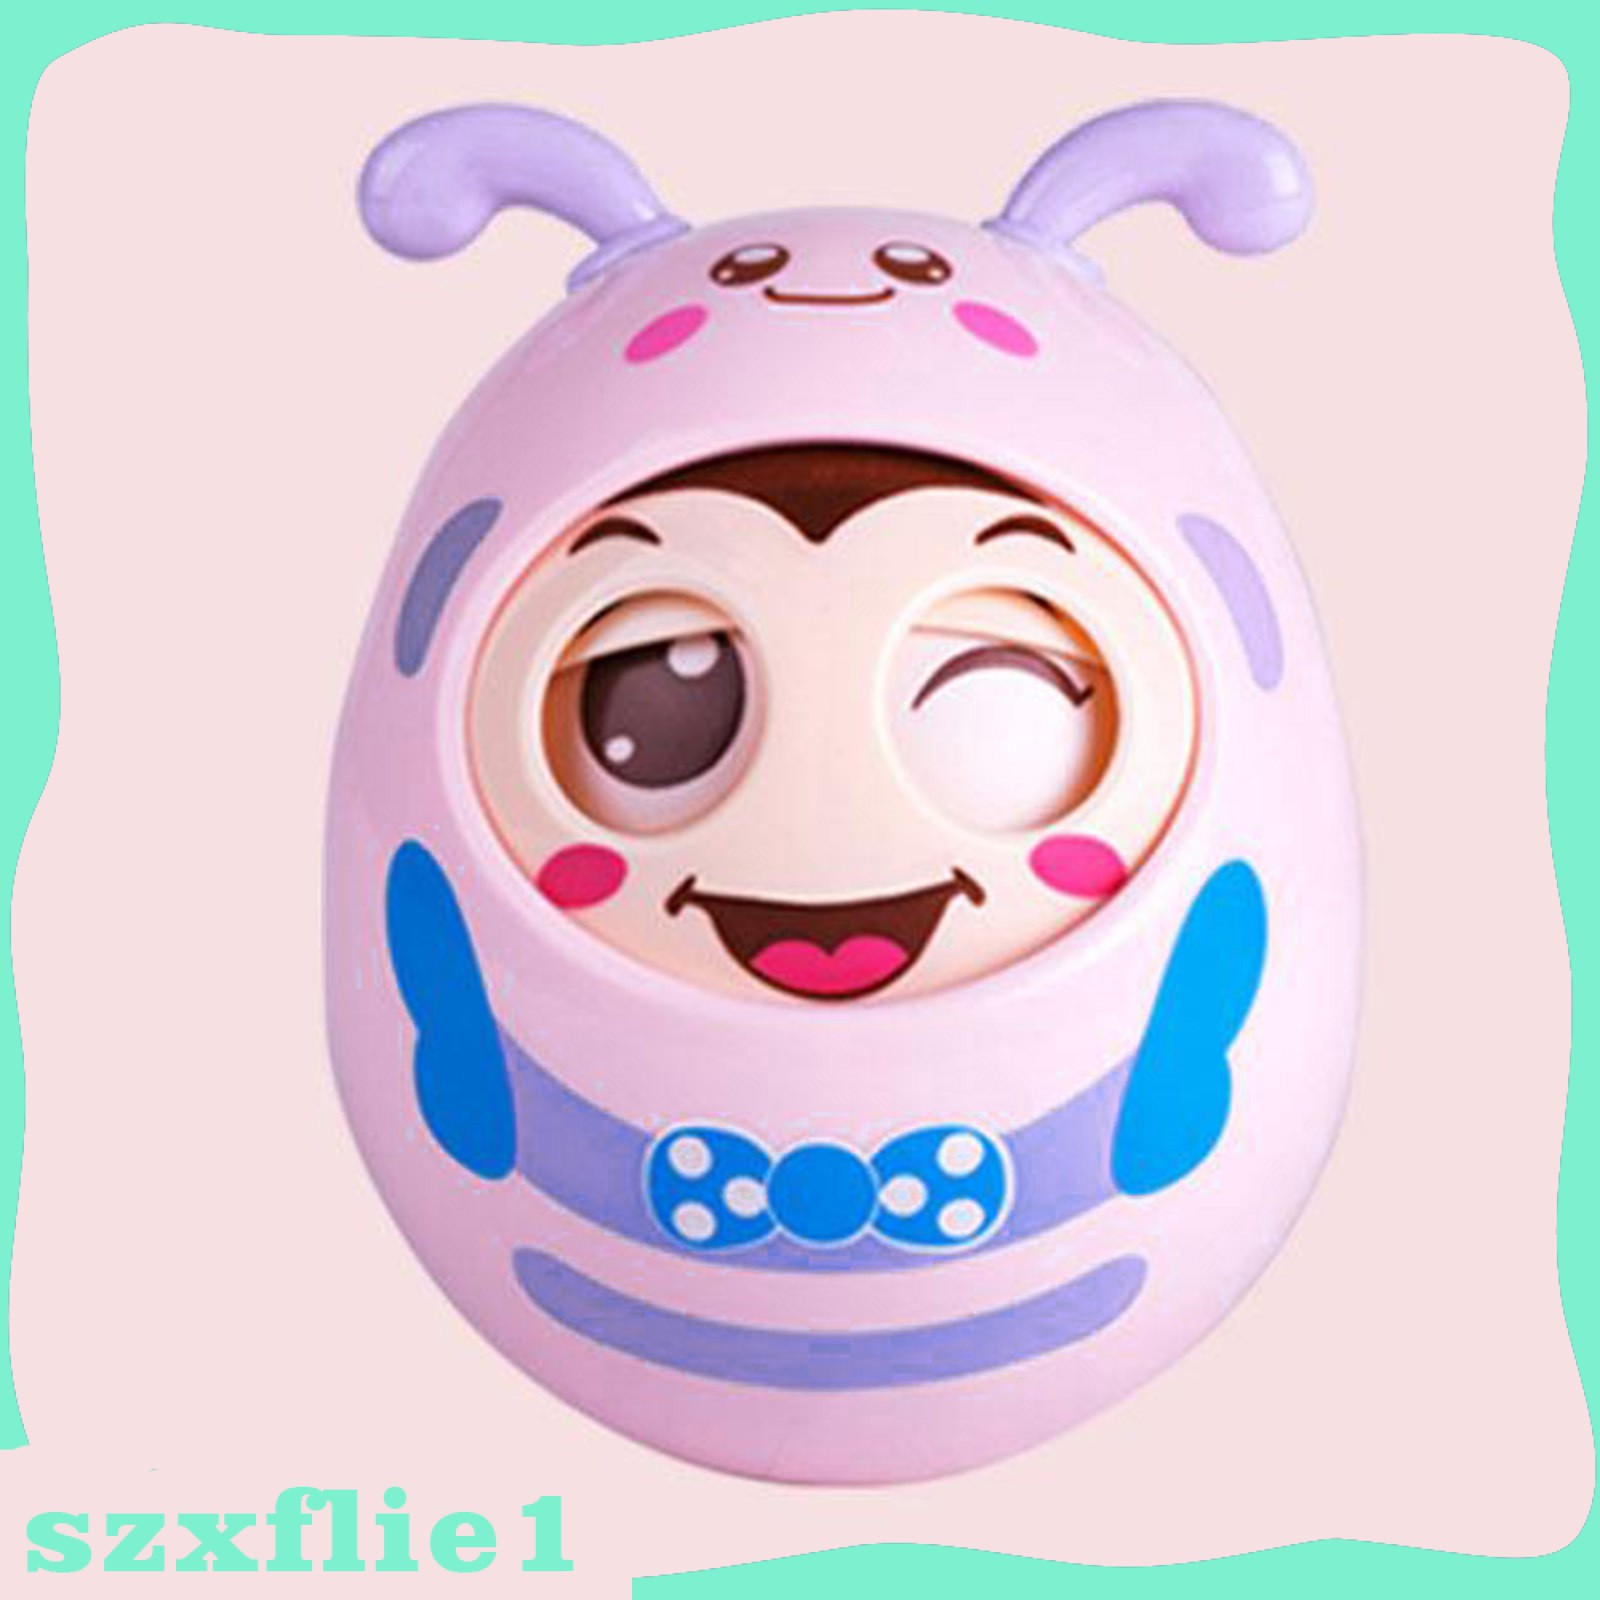 [Hot Sale] Roly-Poly Tumbler Doll Baby Toys 6-12 Month Developmental Toy